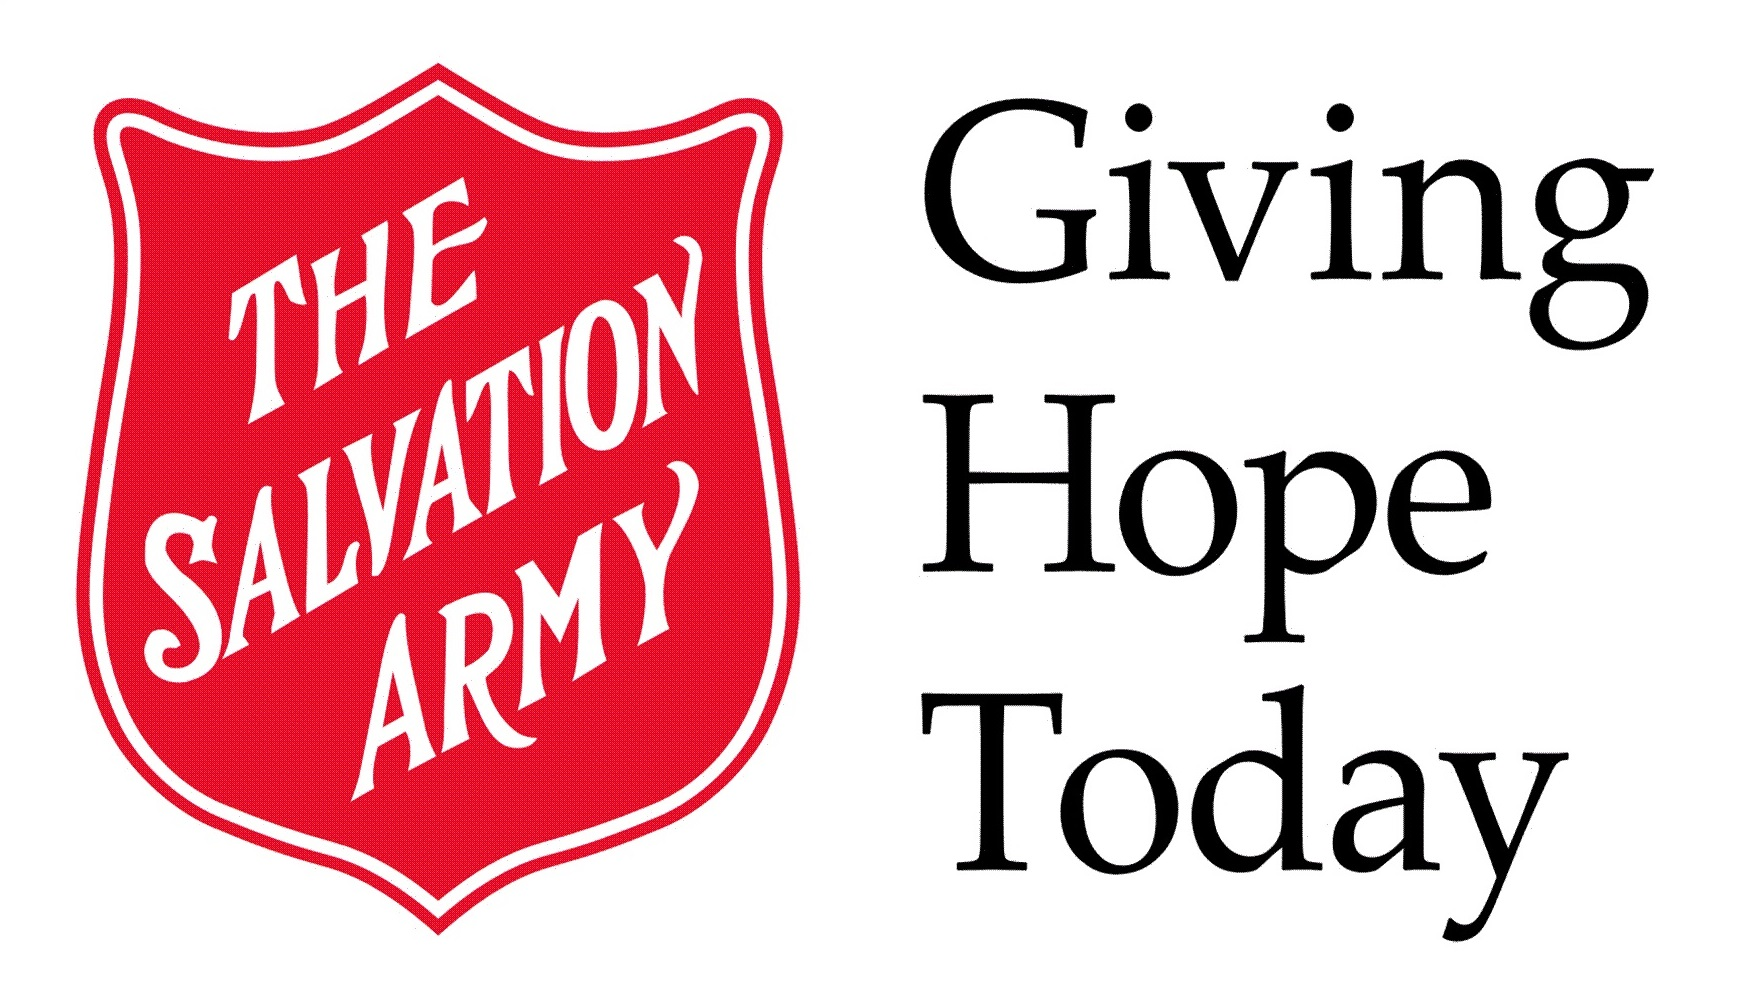 report on salvation army The salvation army newsroom page: download our latest annual report, financial information and brochures about the services we provide in your community.